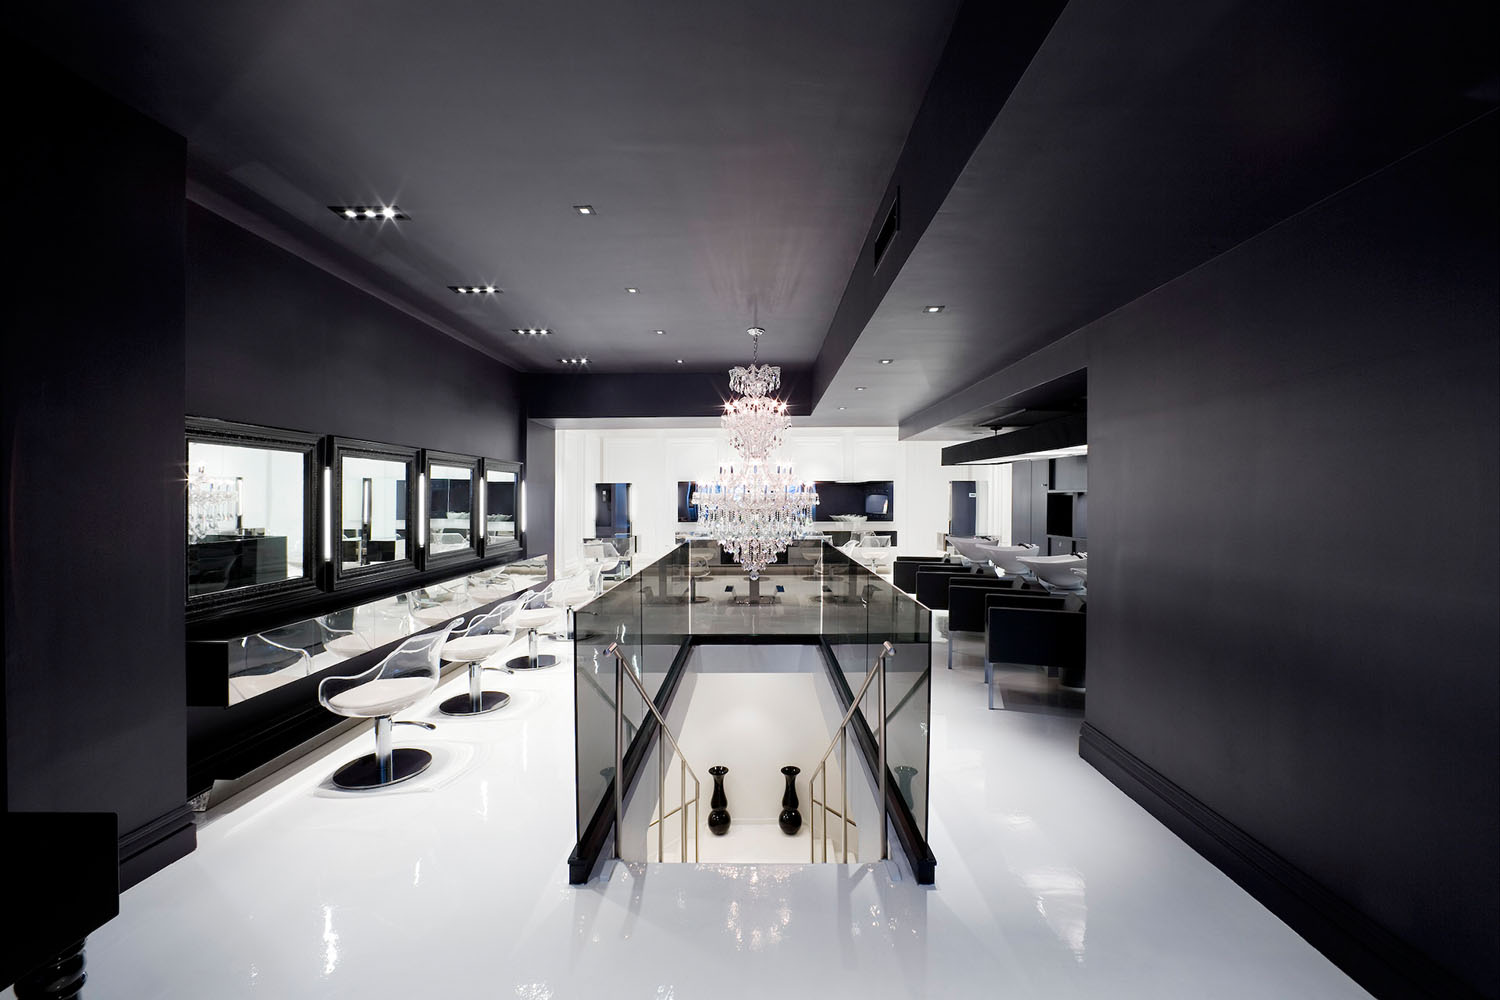 Black and white salon interior with chandelier, stairs and mirrors